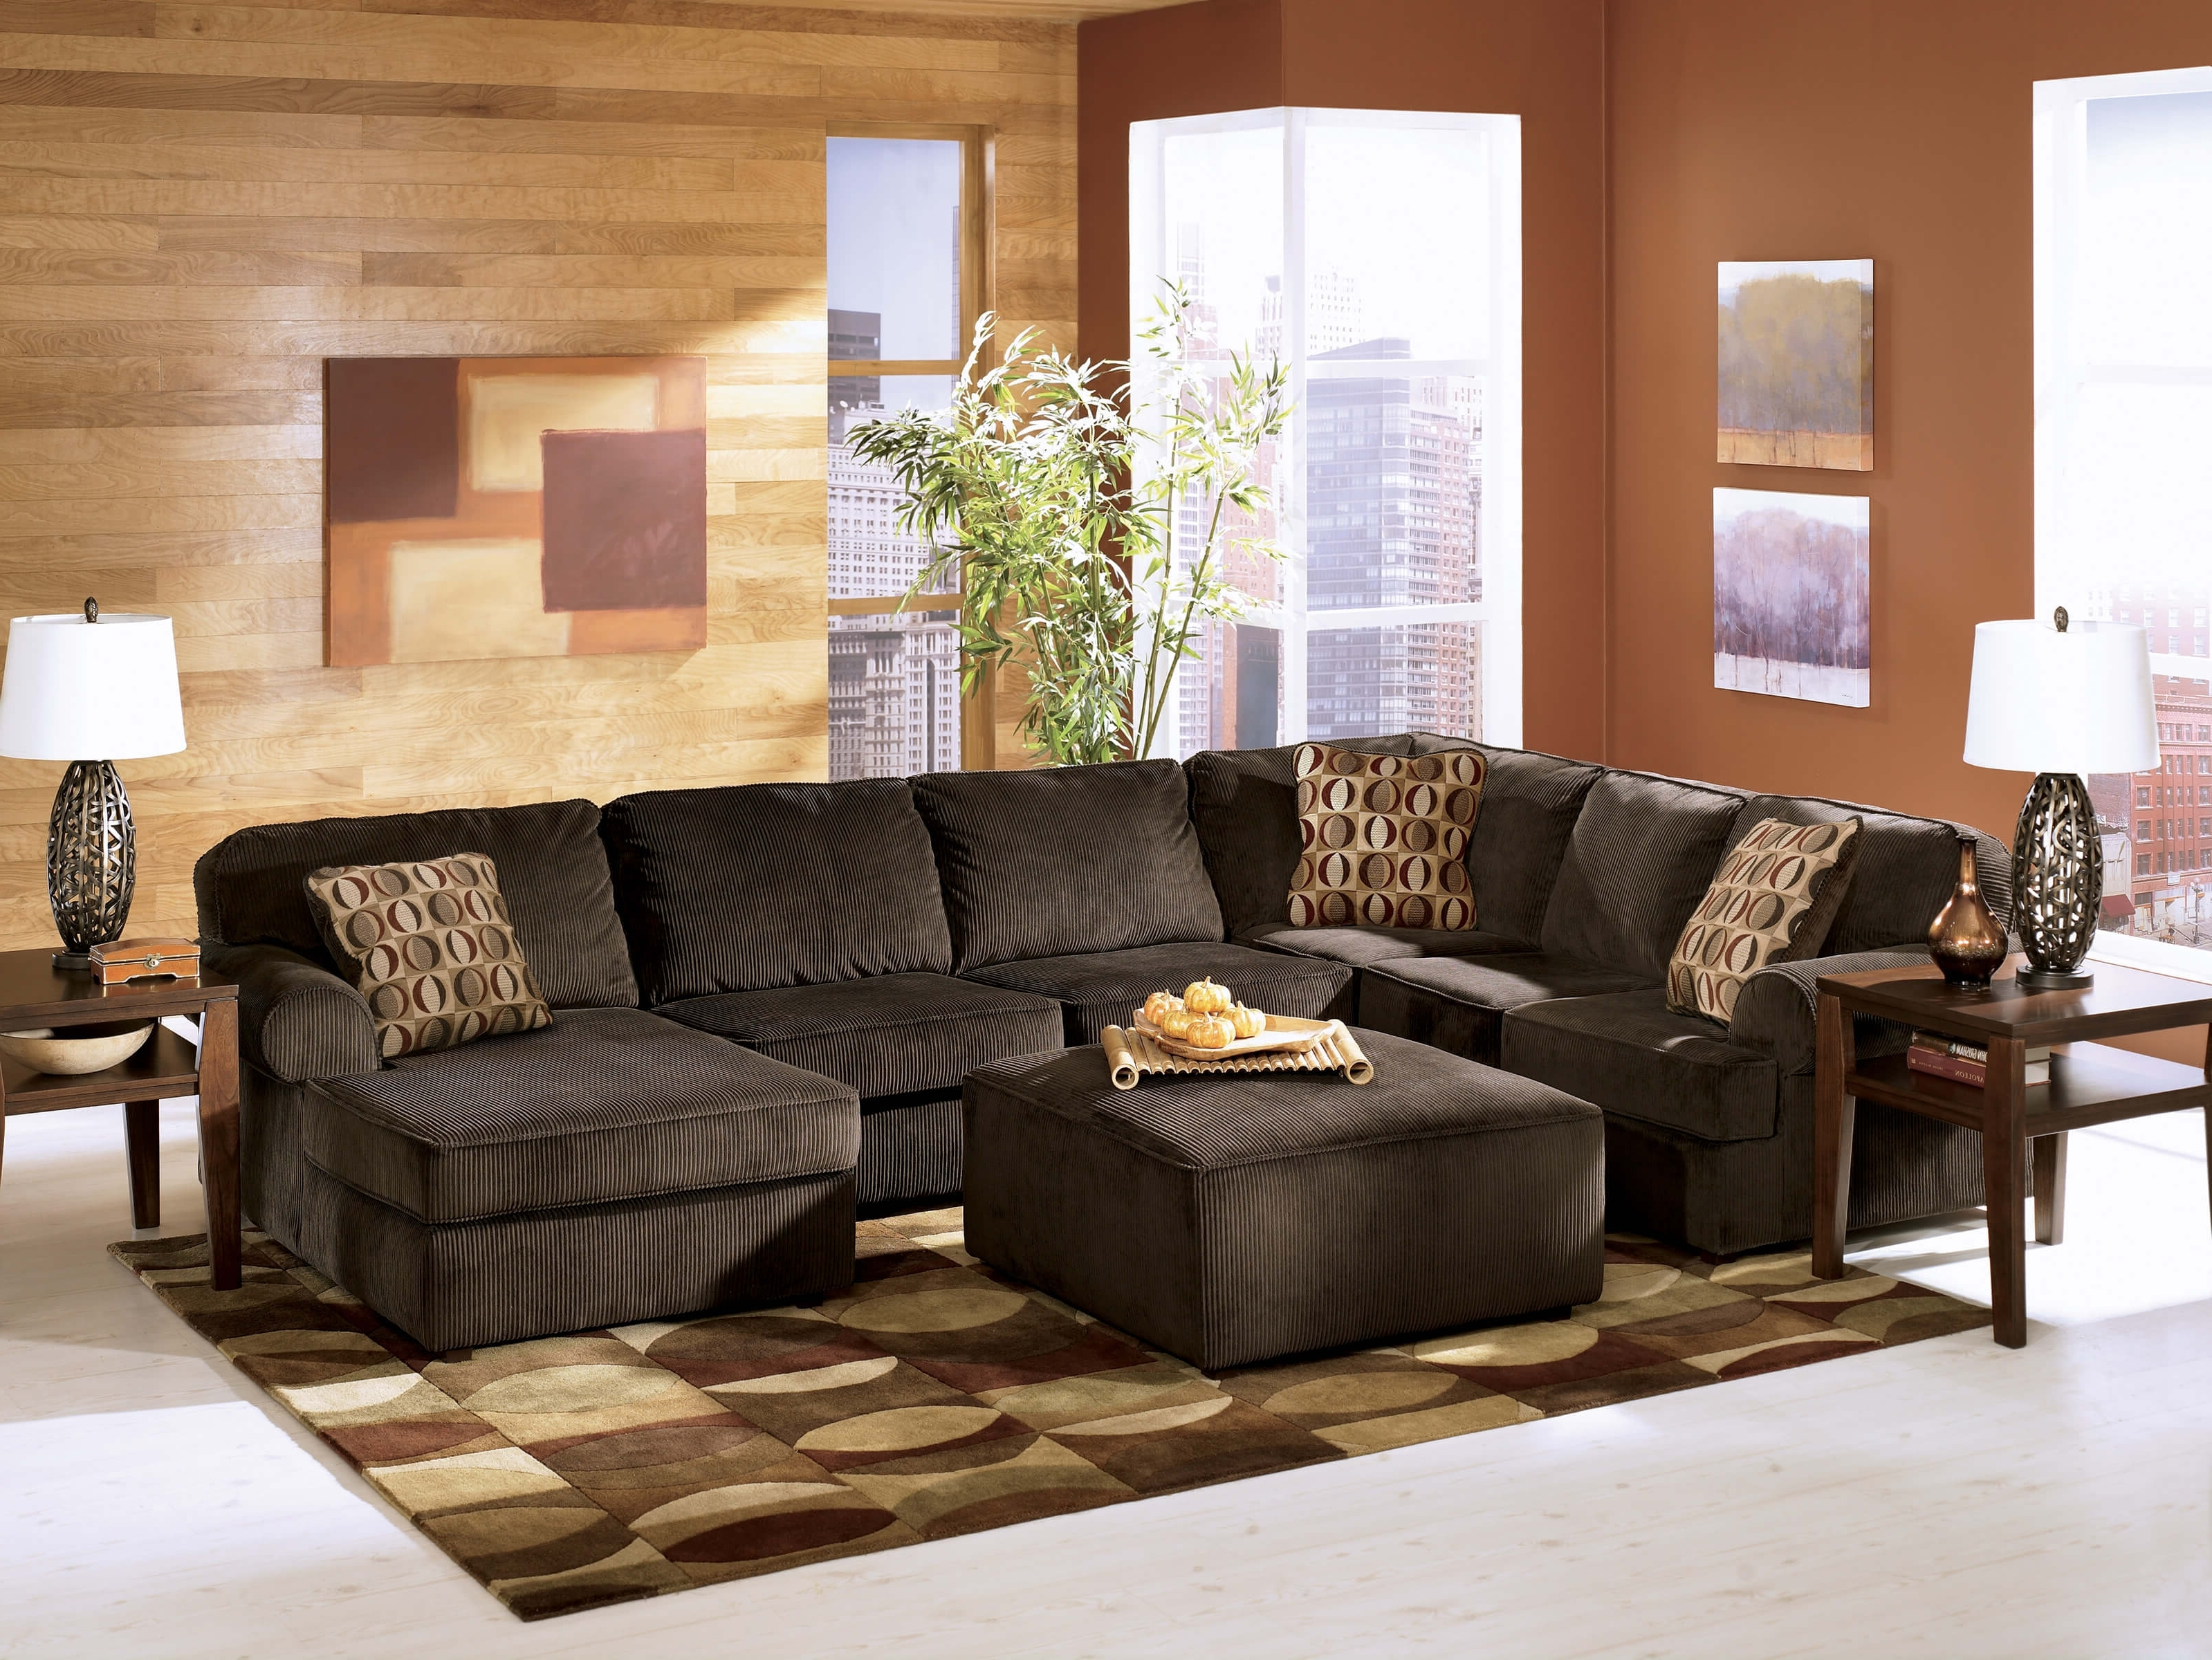 Most Recent Chocolate Sectional Sofas Throughout Vista Chocolate Ashley Sectional (View 8 of 15)